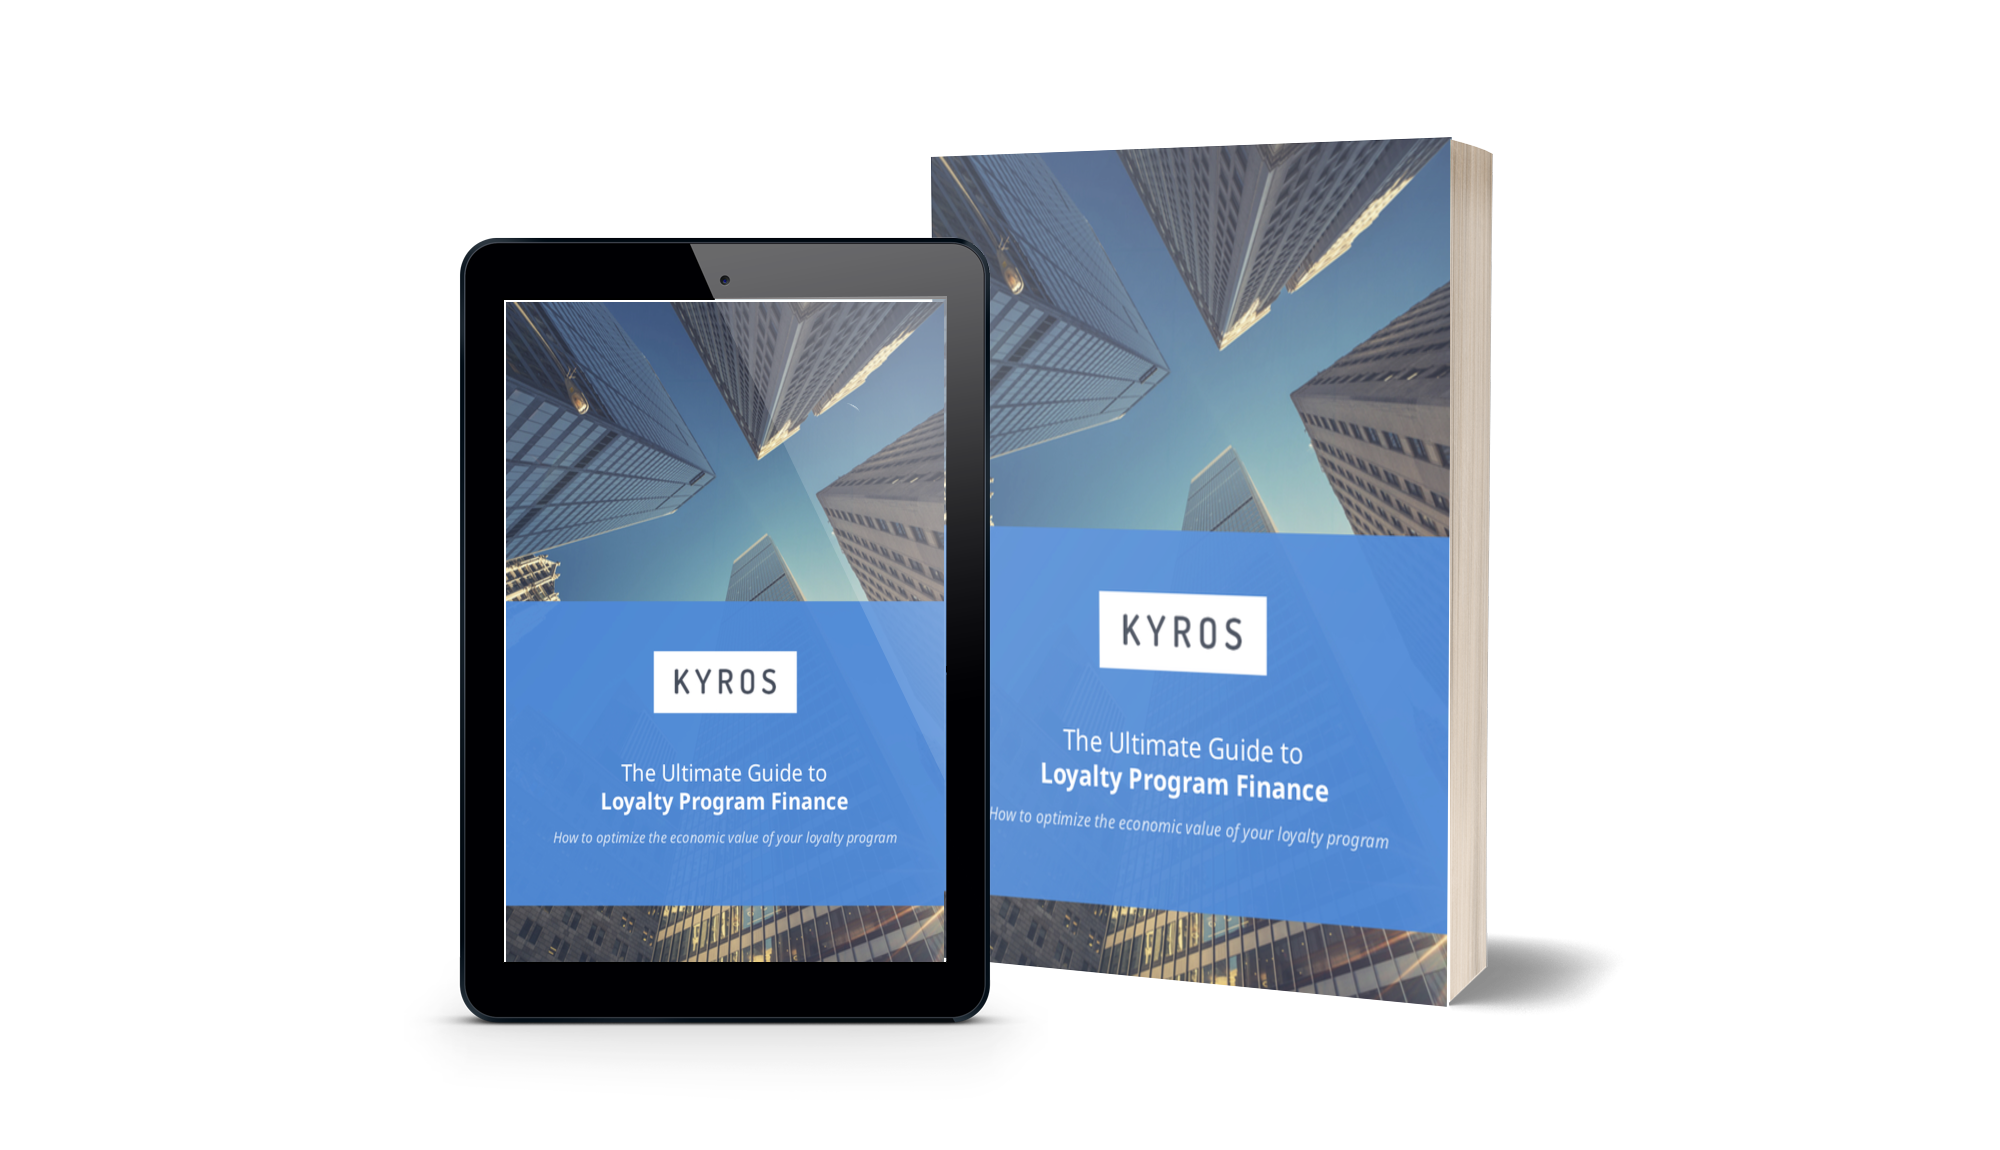 kyros-guide-double cover